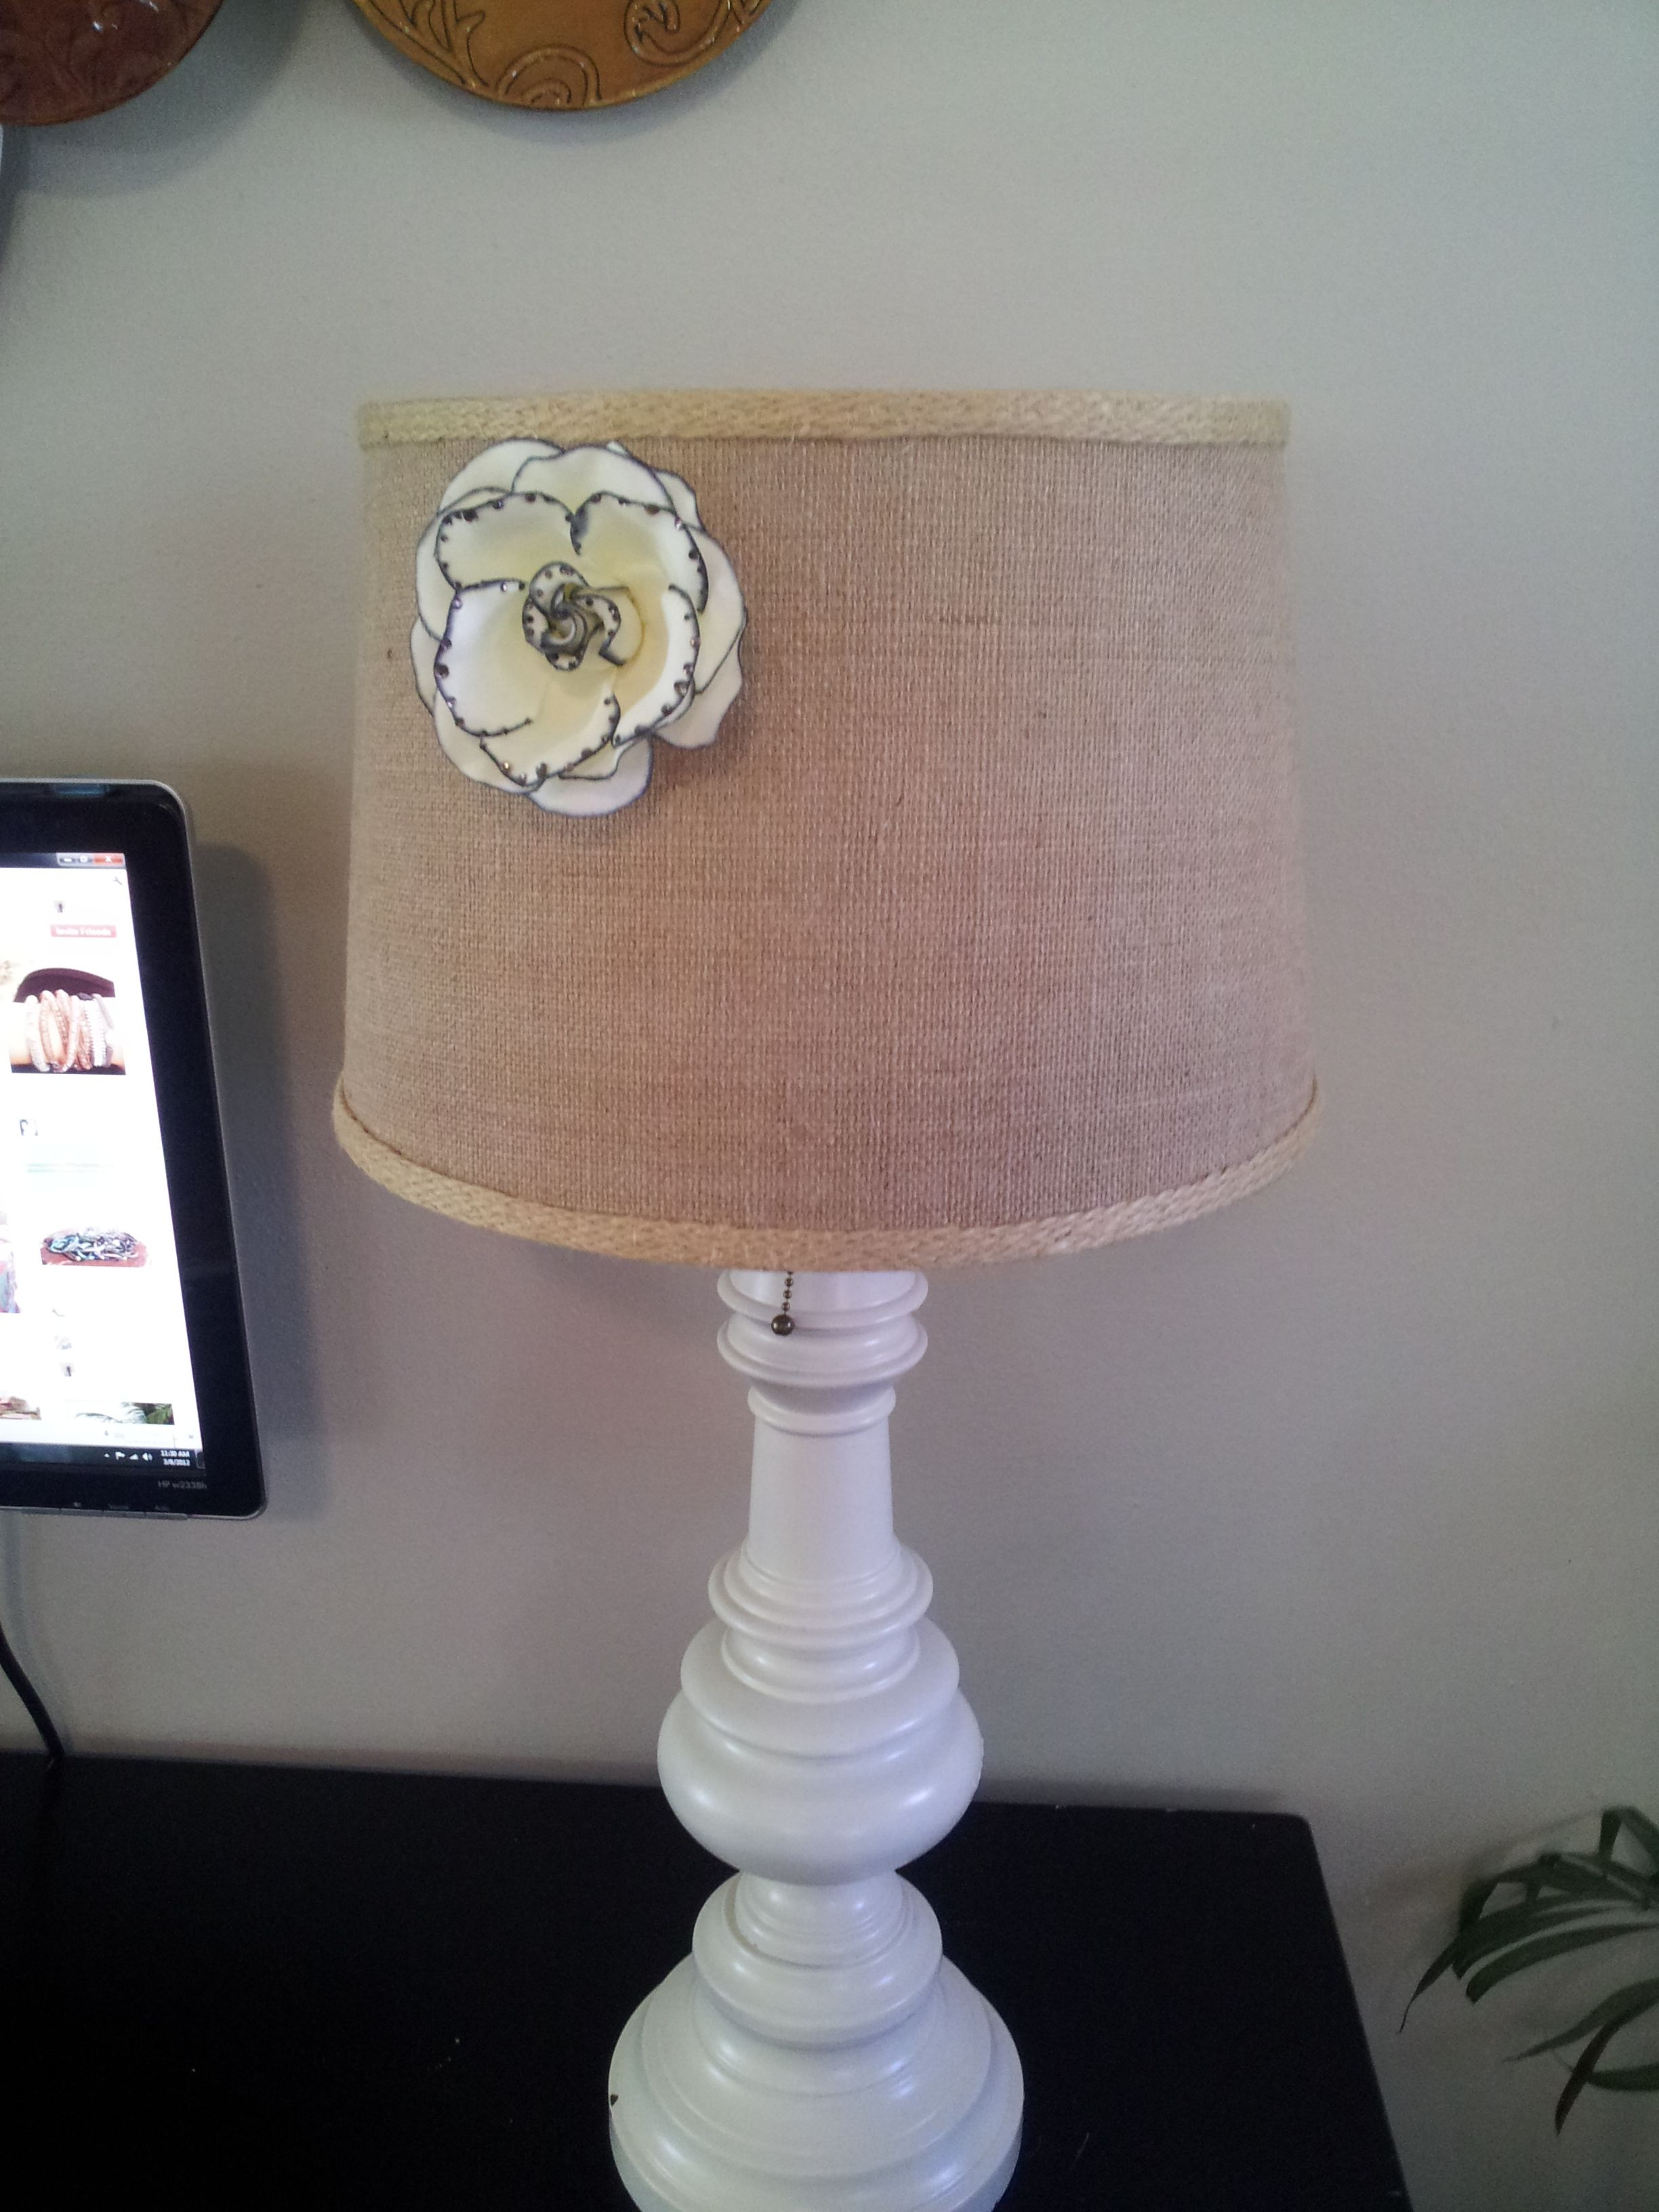 Hobby Lobby Lamp Shades Alluring Took A Cute Flower Barrette I Found At Hobby Lobby And Hot Glued It 2018